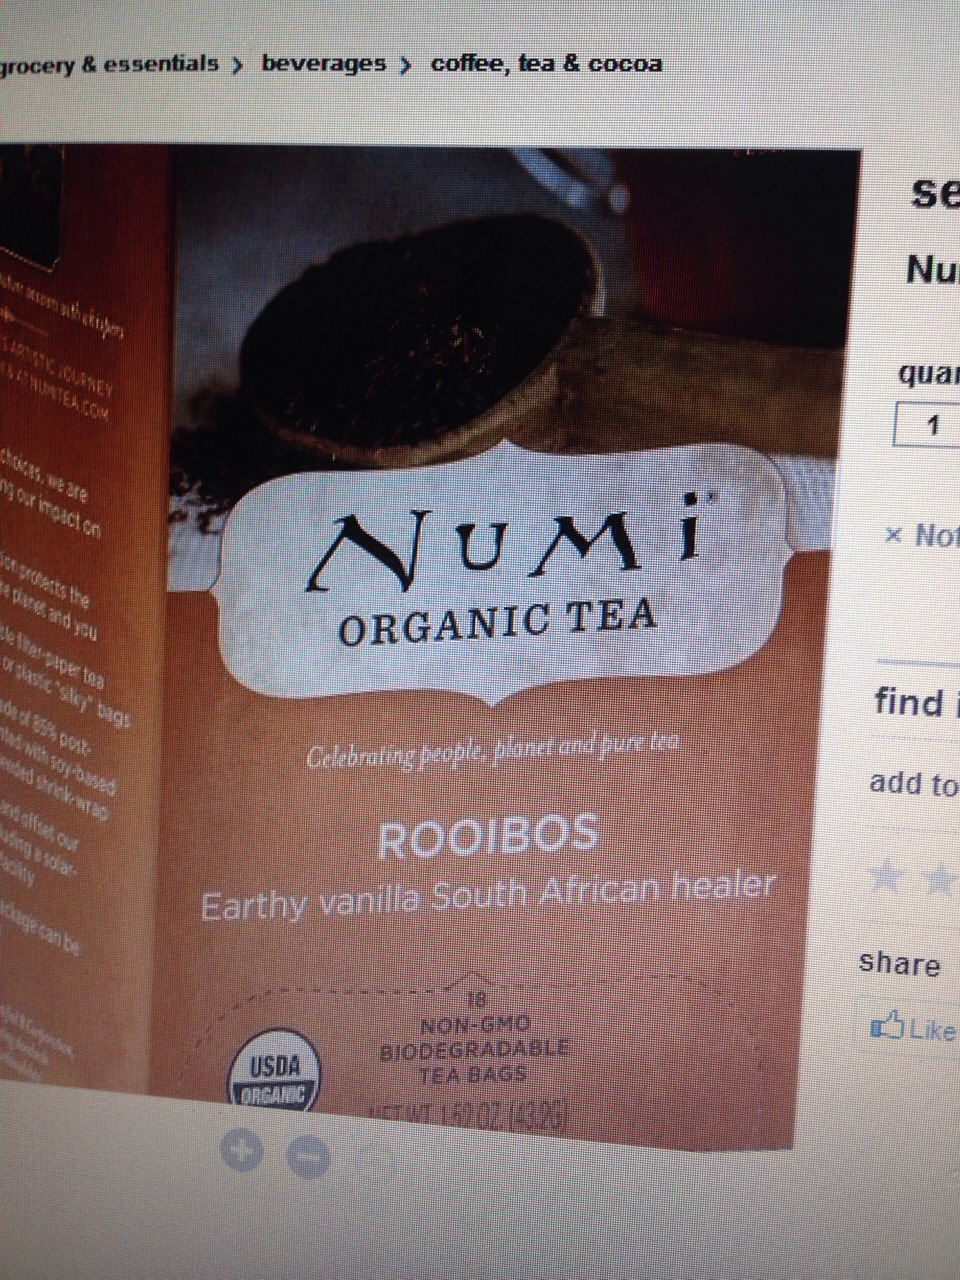 Can find it at target.   Complete List of benefits here:   http://www.undergroundhealth.com/10-amazing-health-benefits-of-rooibos-tea/